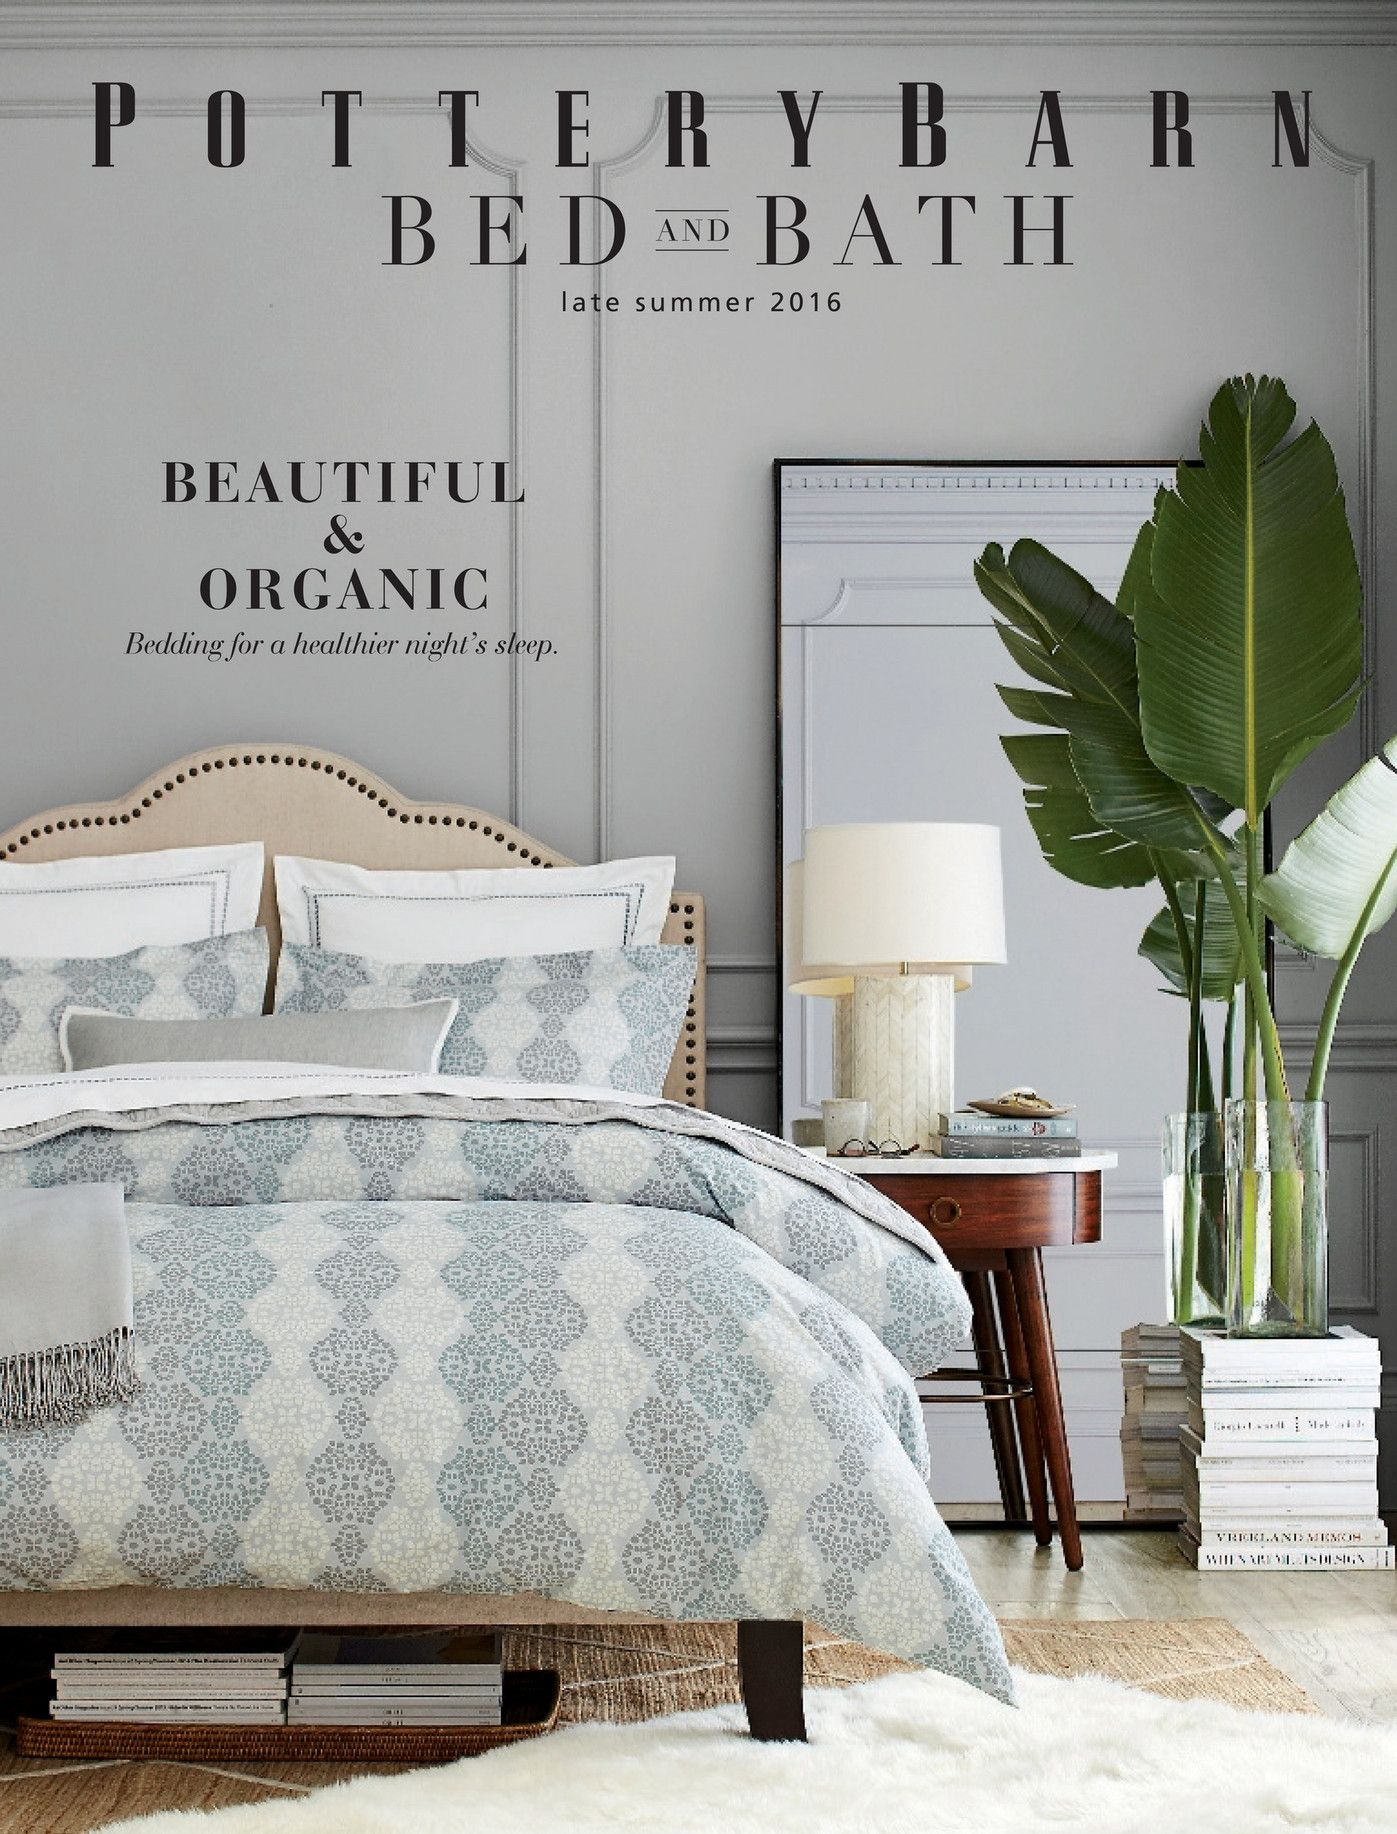 Pottery Barn Bed & Bath Summer 2016 Page 2627